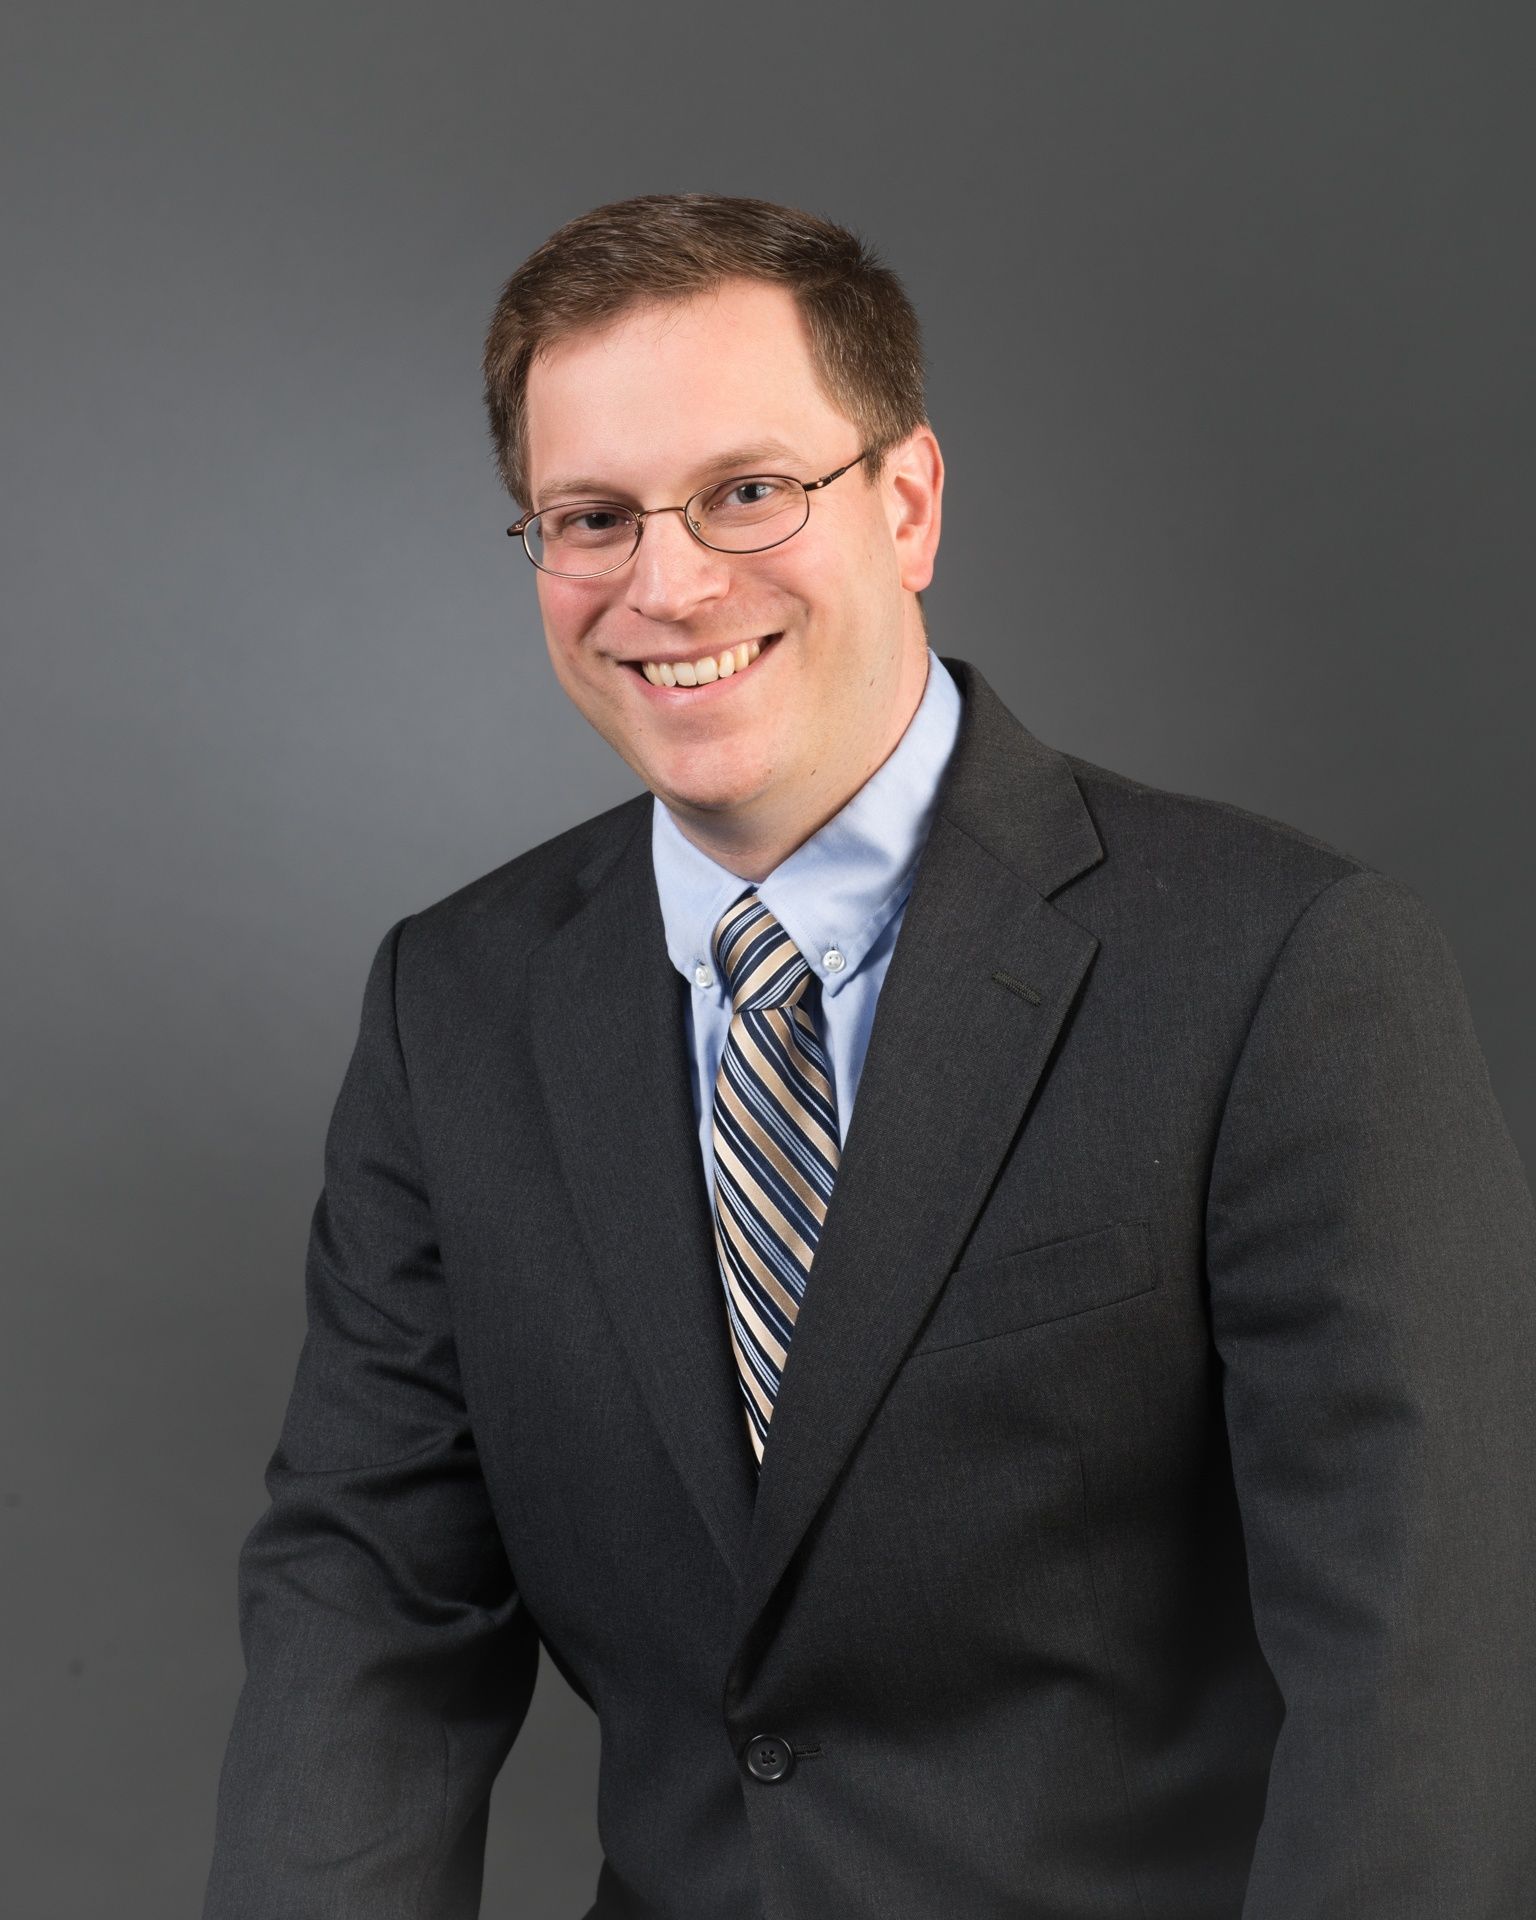 PBA Senior Associate, Andrew Luzenski, PE, LEED AP to Present May 9 at Energy Efficiency Conference & Exhibit, Novi, MI